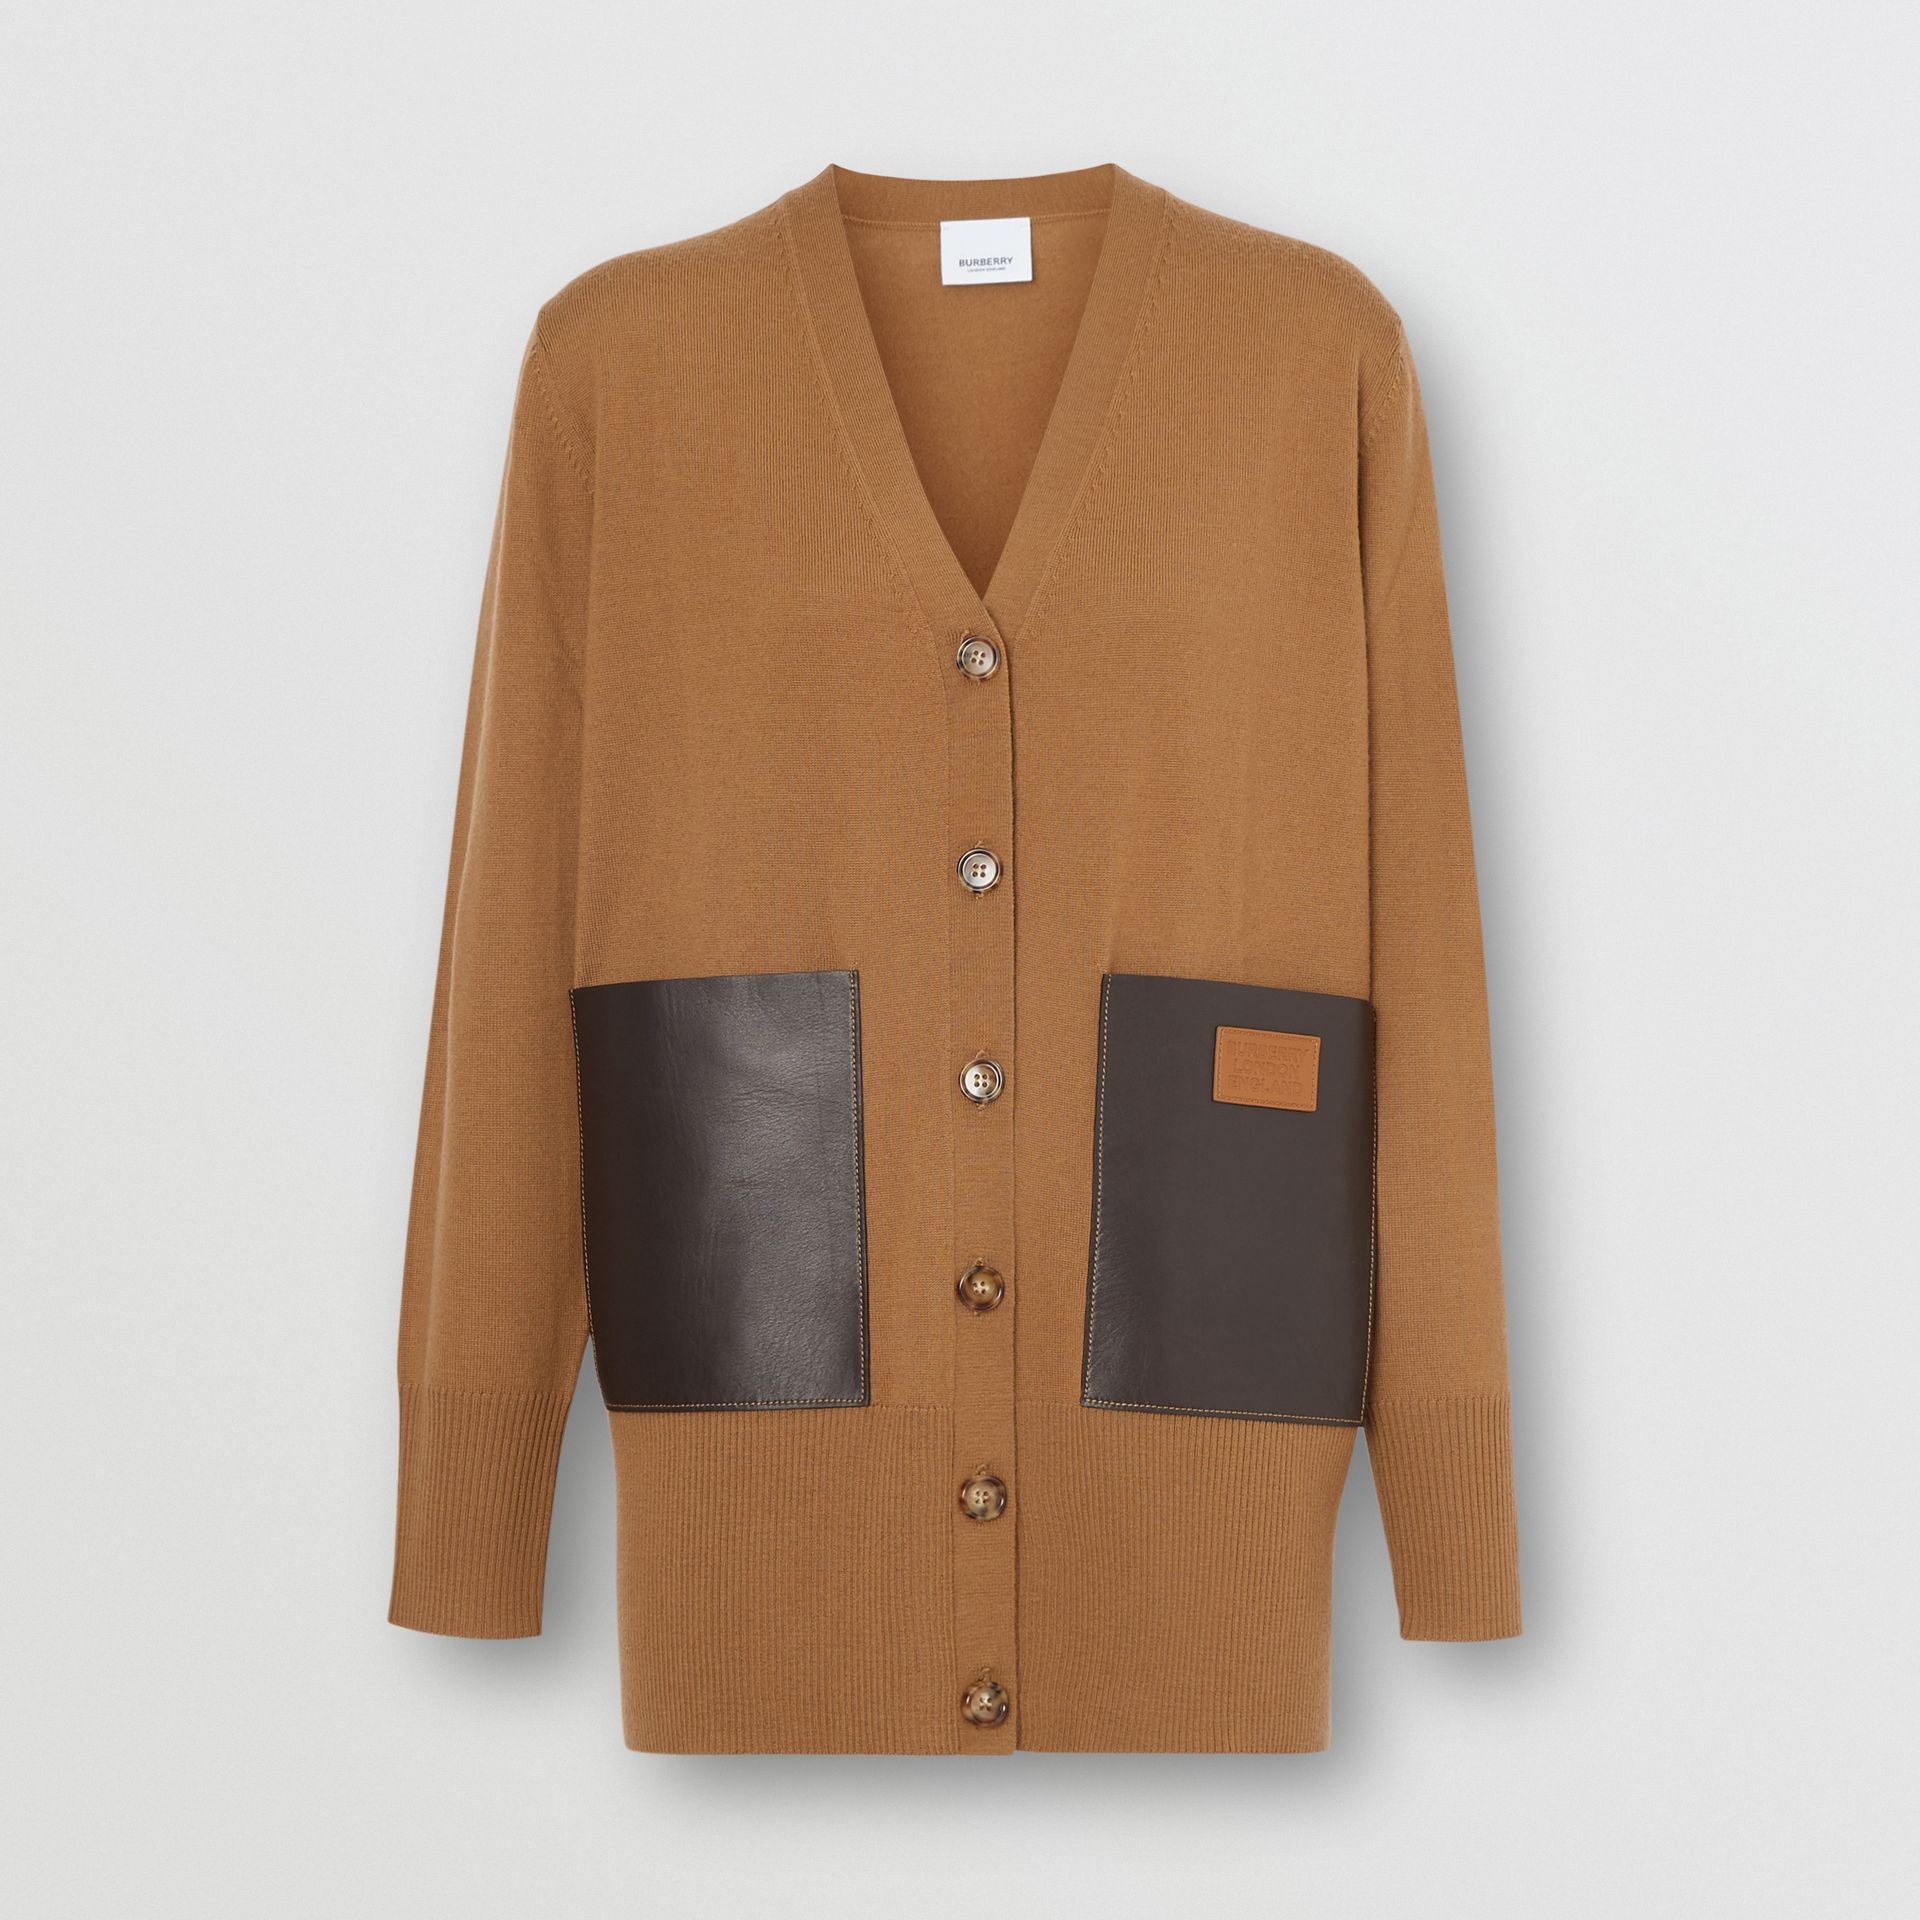 Lambskin Pocket Merino Wool Cardigan in Warm Walnut - Women | Burberry - gallery image 2